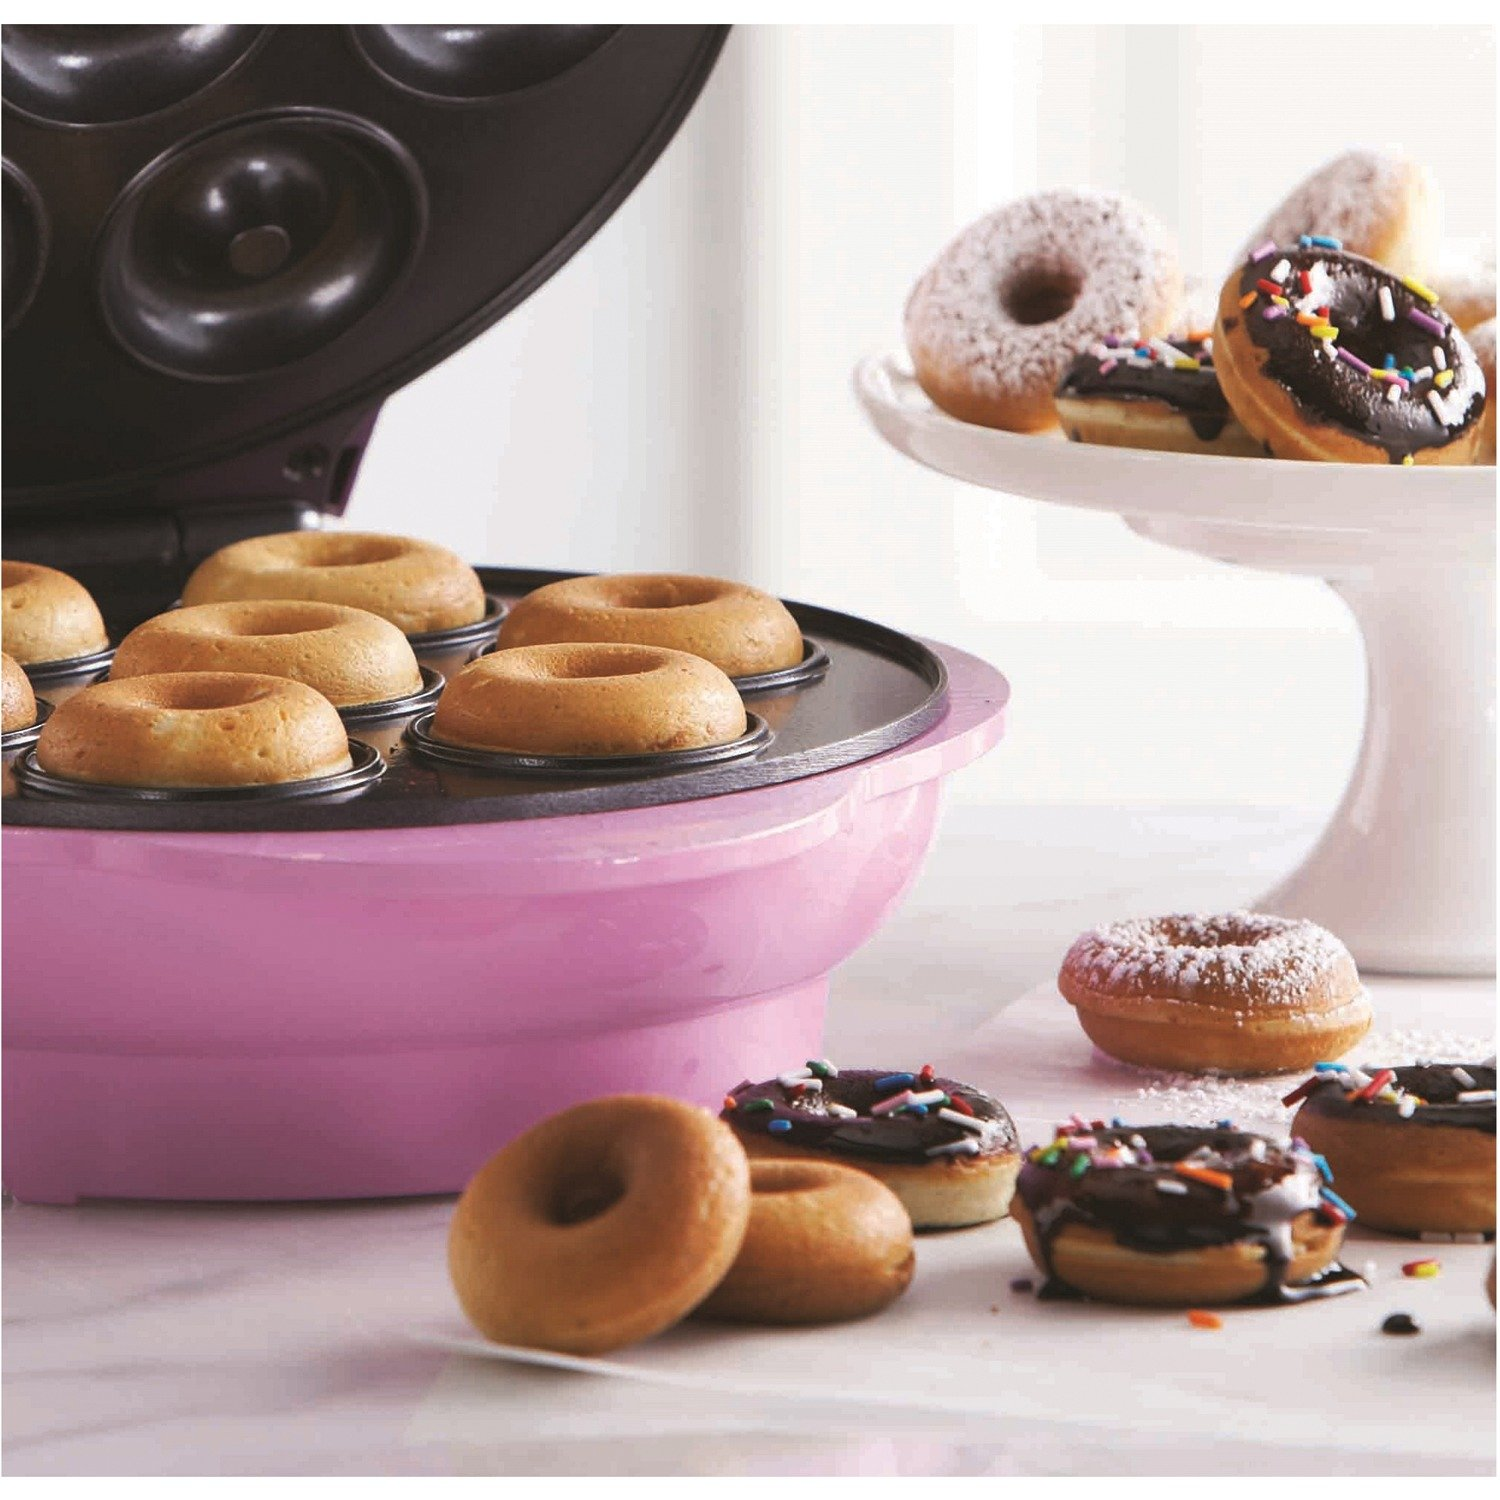 Brentwood TS-250 Non-Stick Mini Donut Maker Machine, Pink by Brentwood (Image #4)